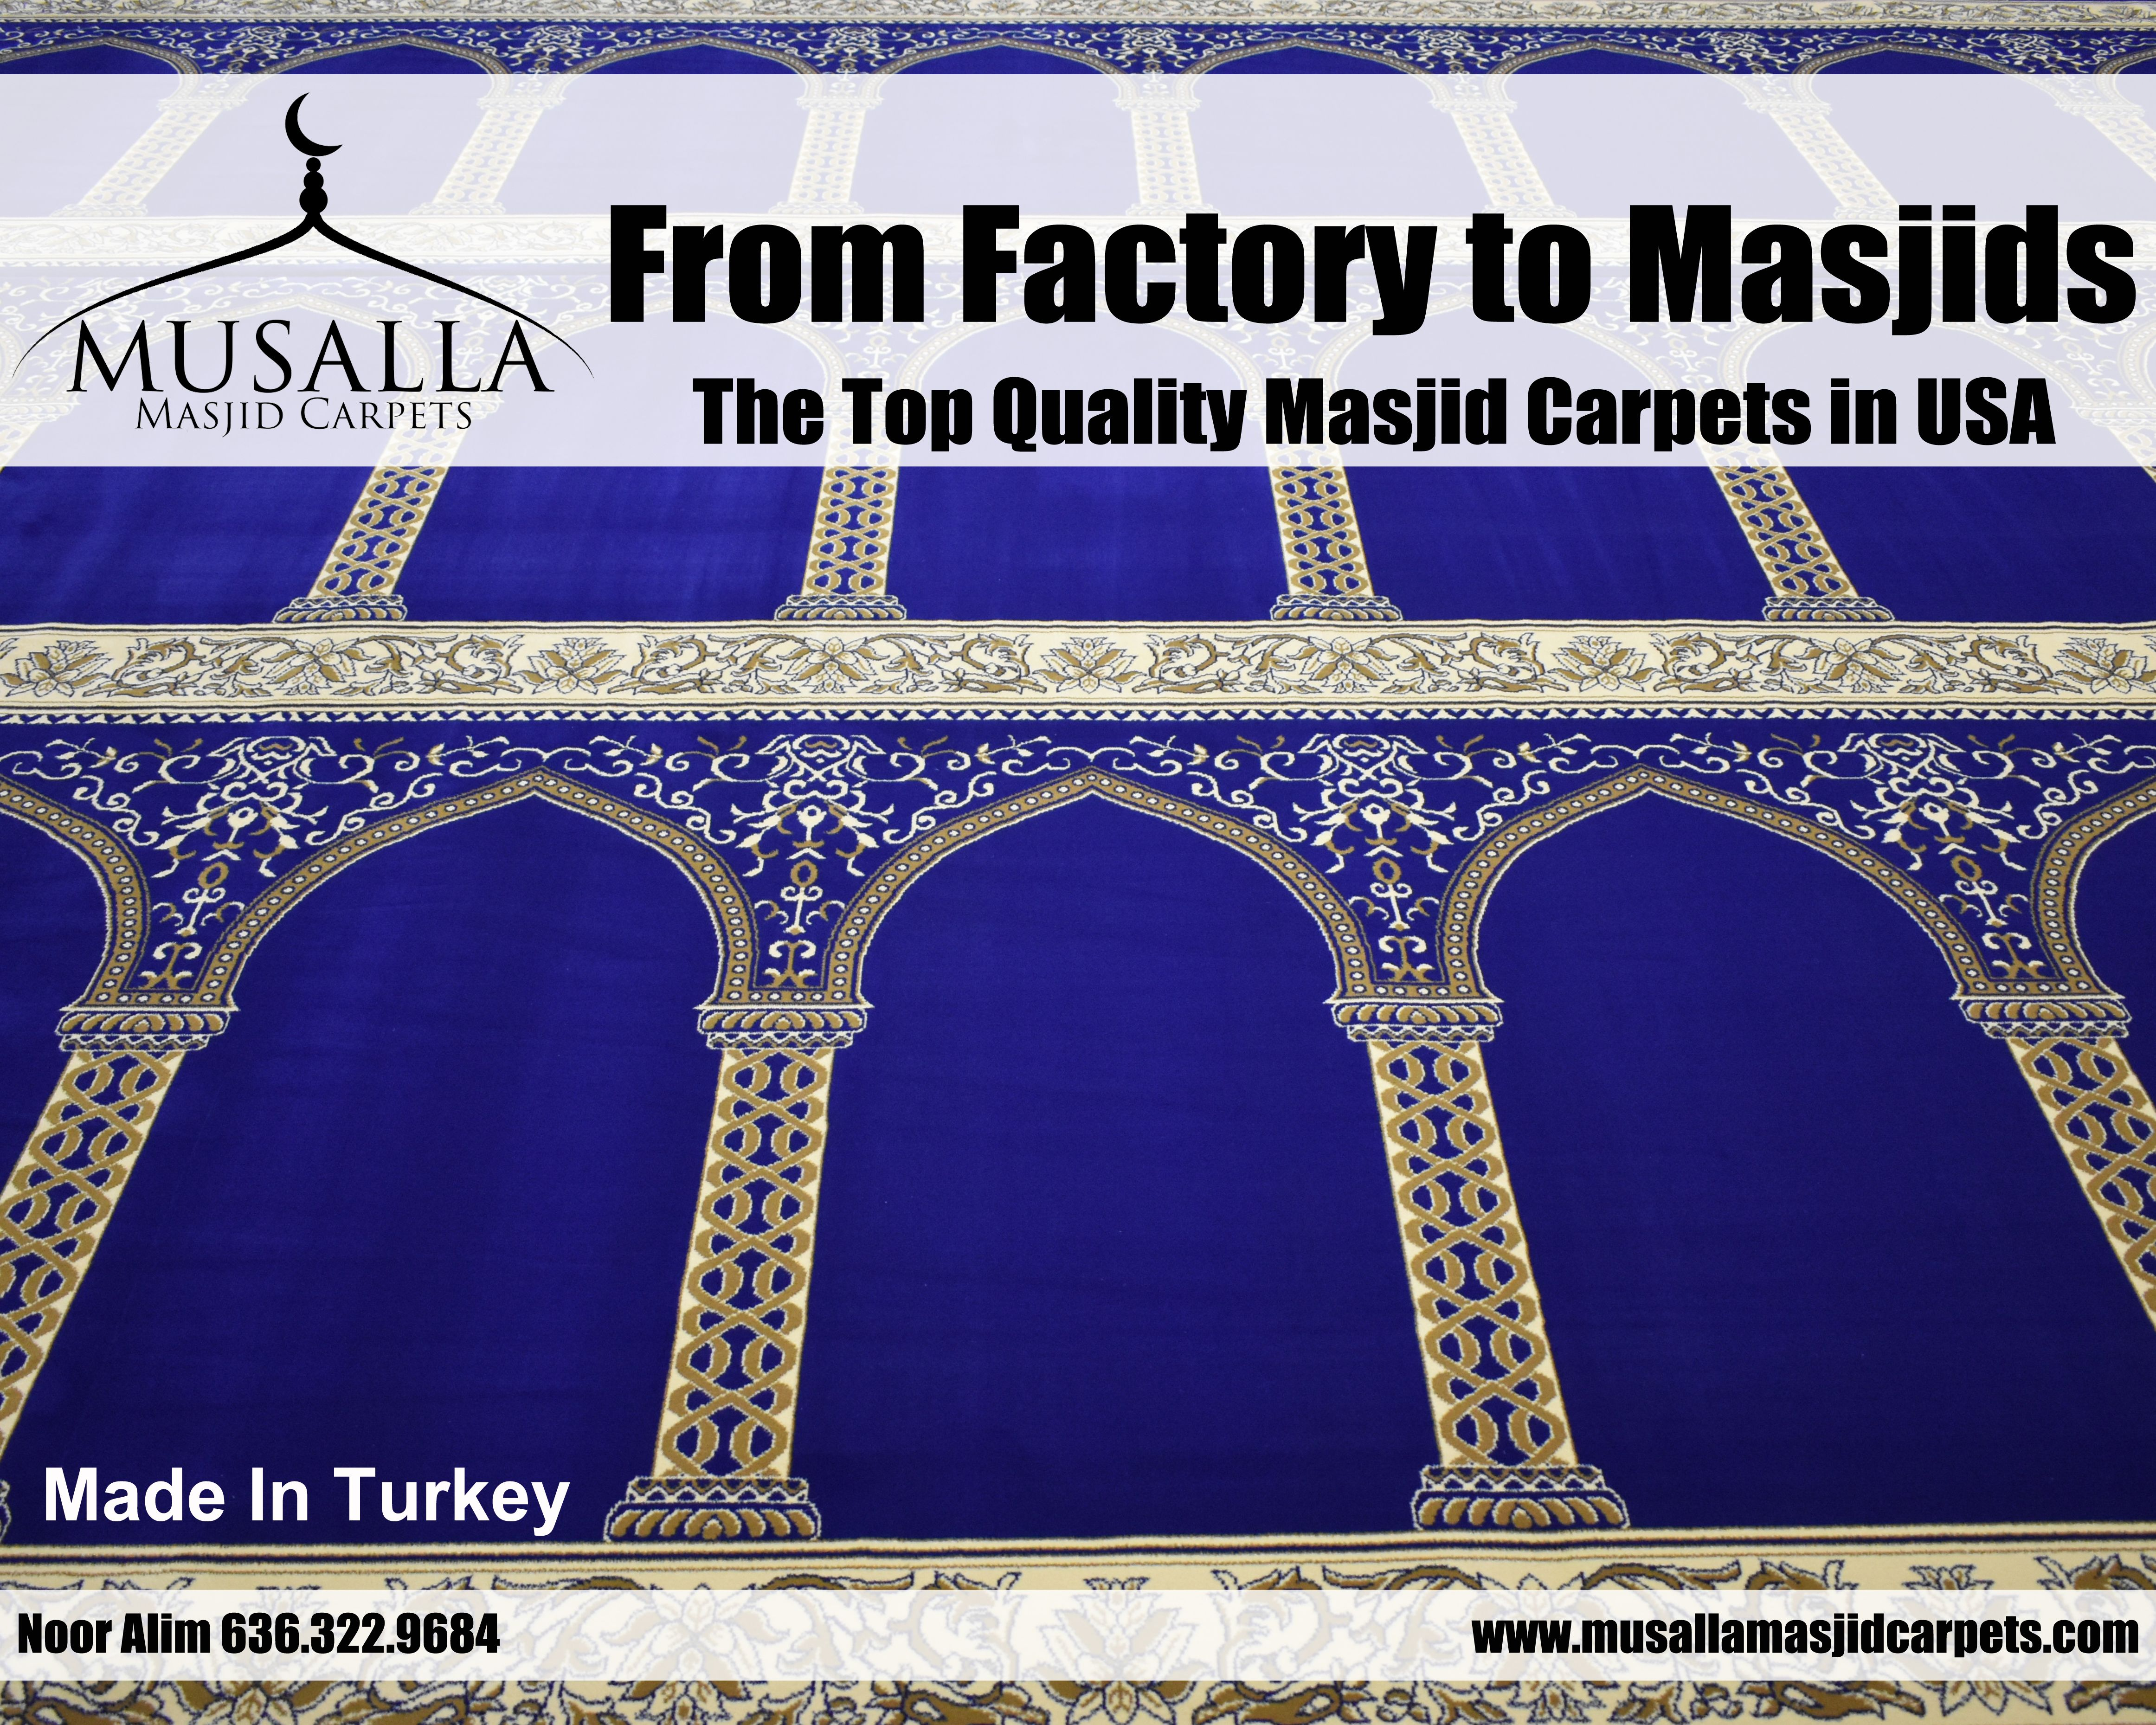 Musalla masjid carpets is manufacturer of the best quality